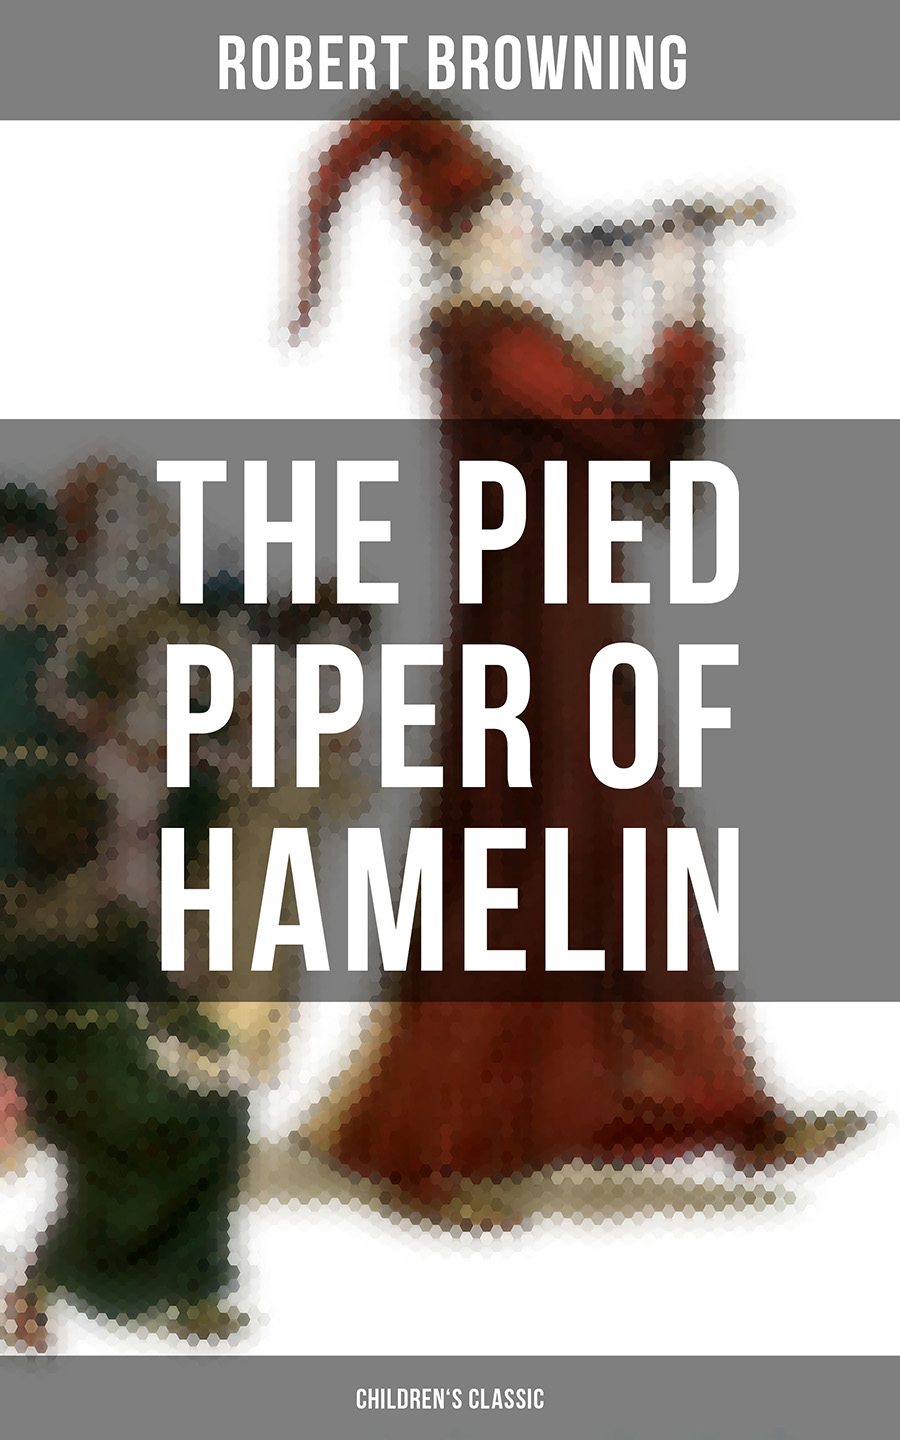 Robert Browning The Pied Piper of Hamelin (Children's Classic) цена и фото